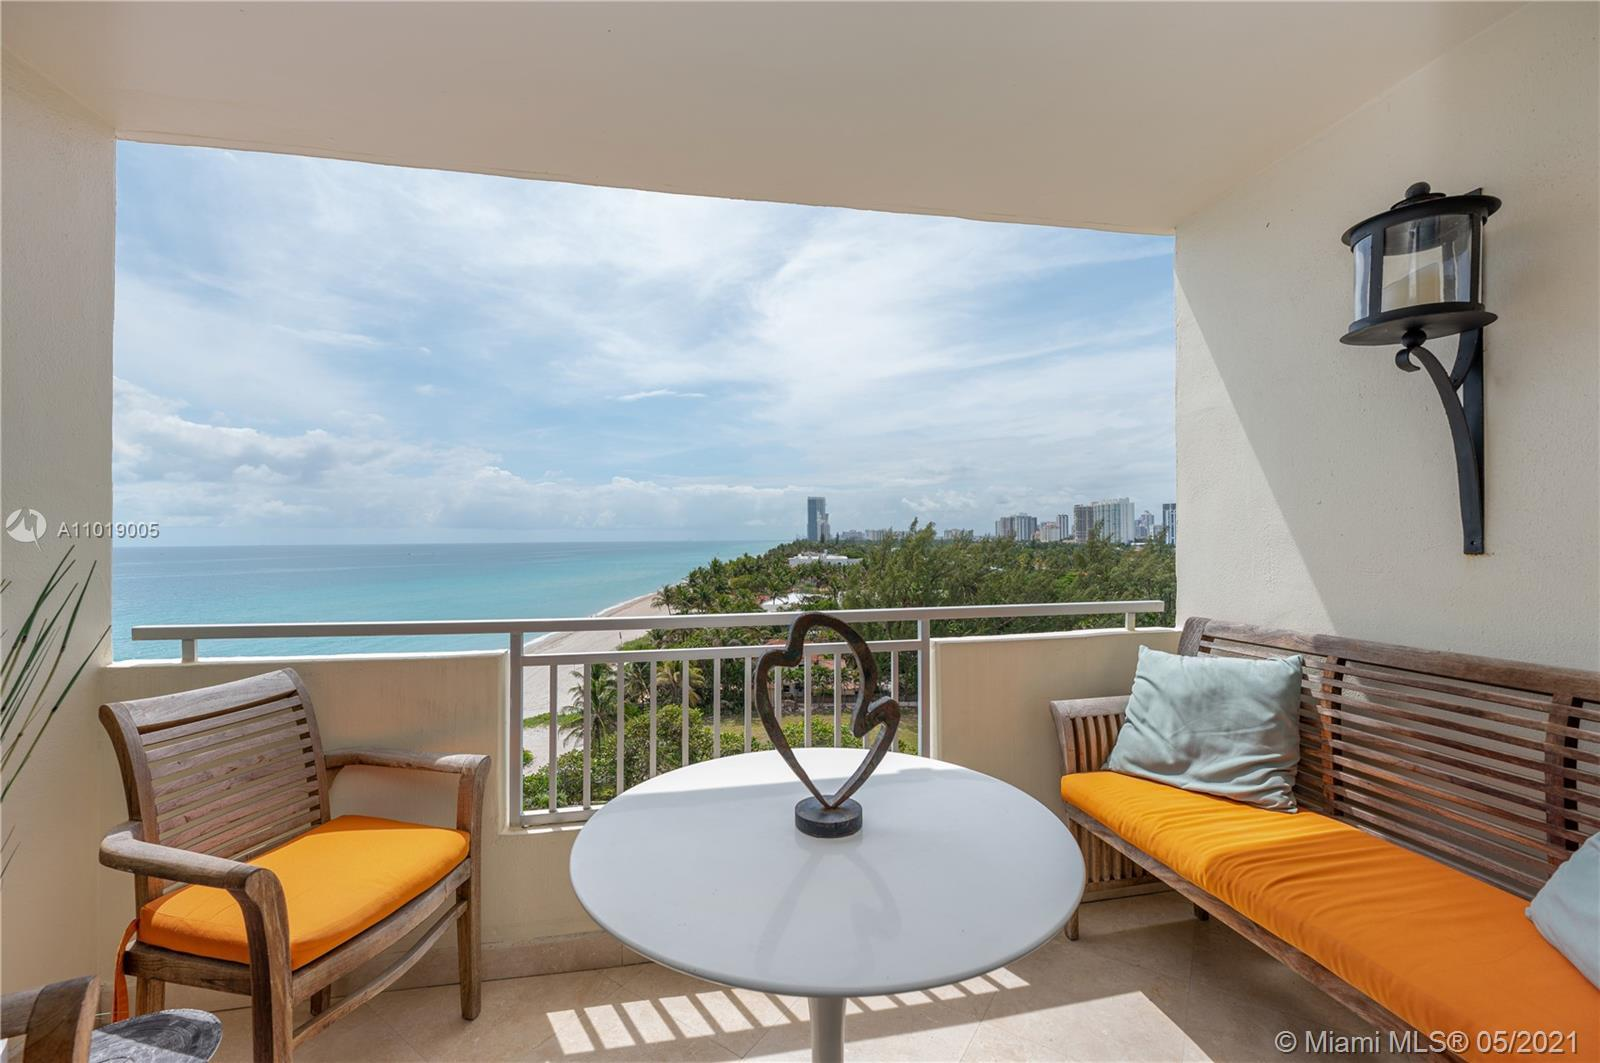 Rare beach front condo with unobstructed views just steps away from the exclusive Golden Beach Estat